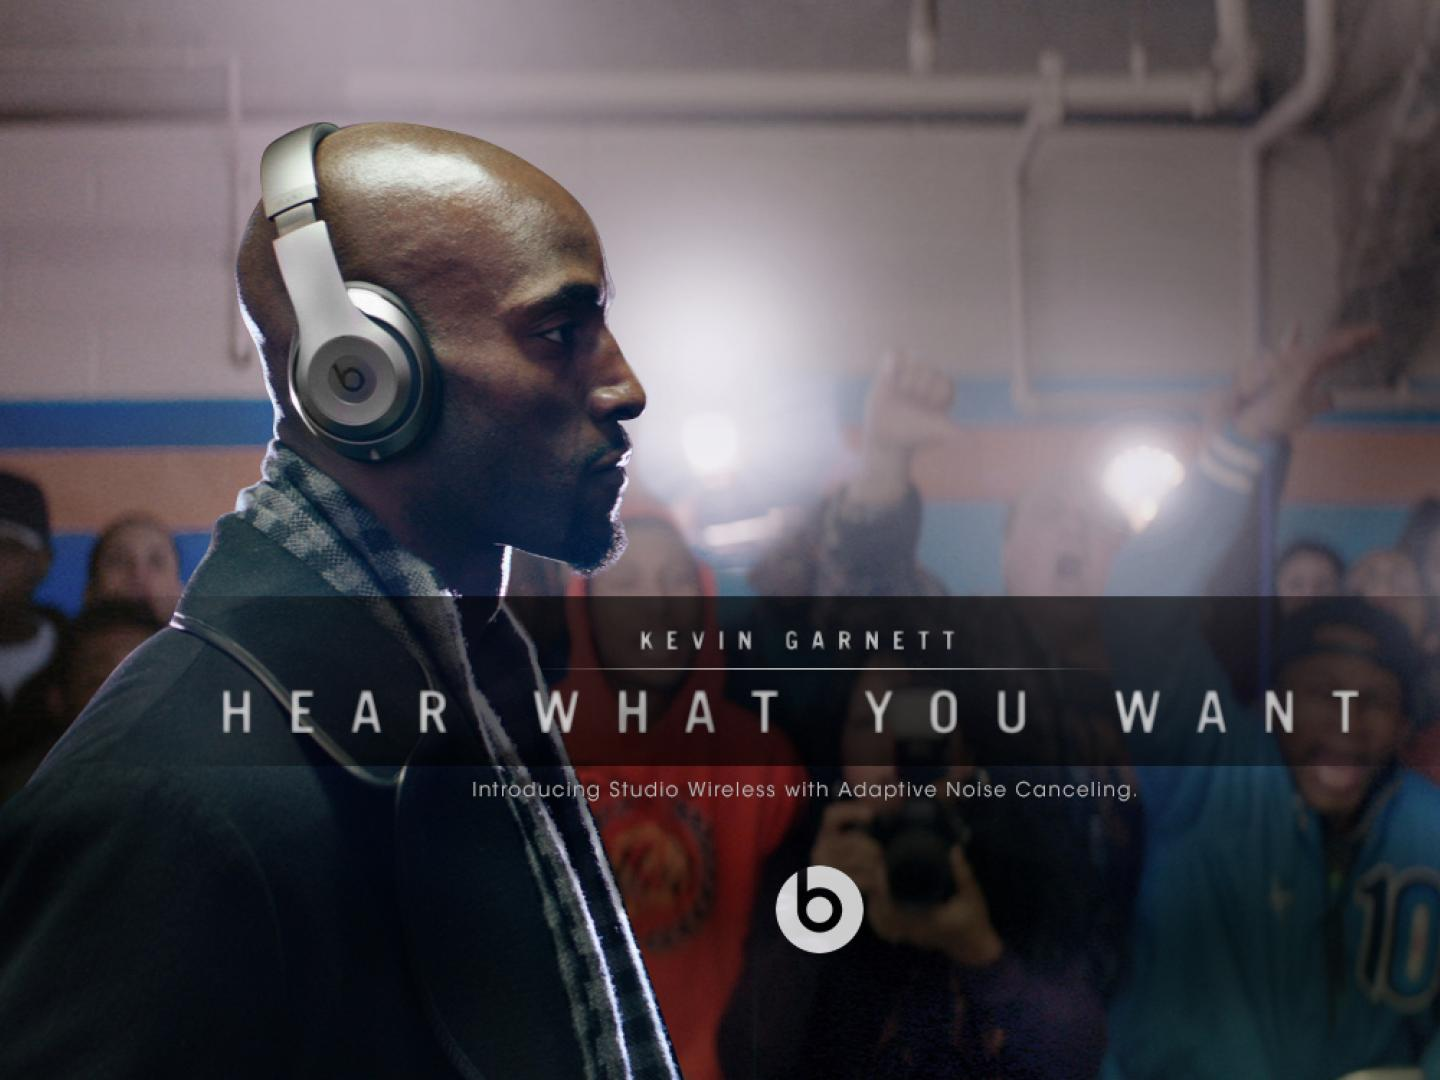 Image for Beats by Dr. Dre - Hear What You Want - Kevin Garnett